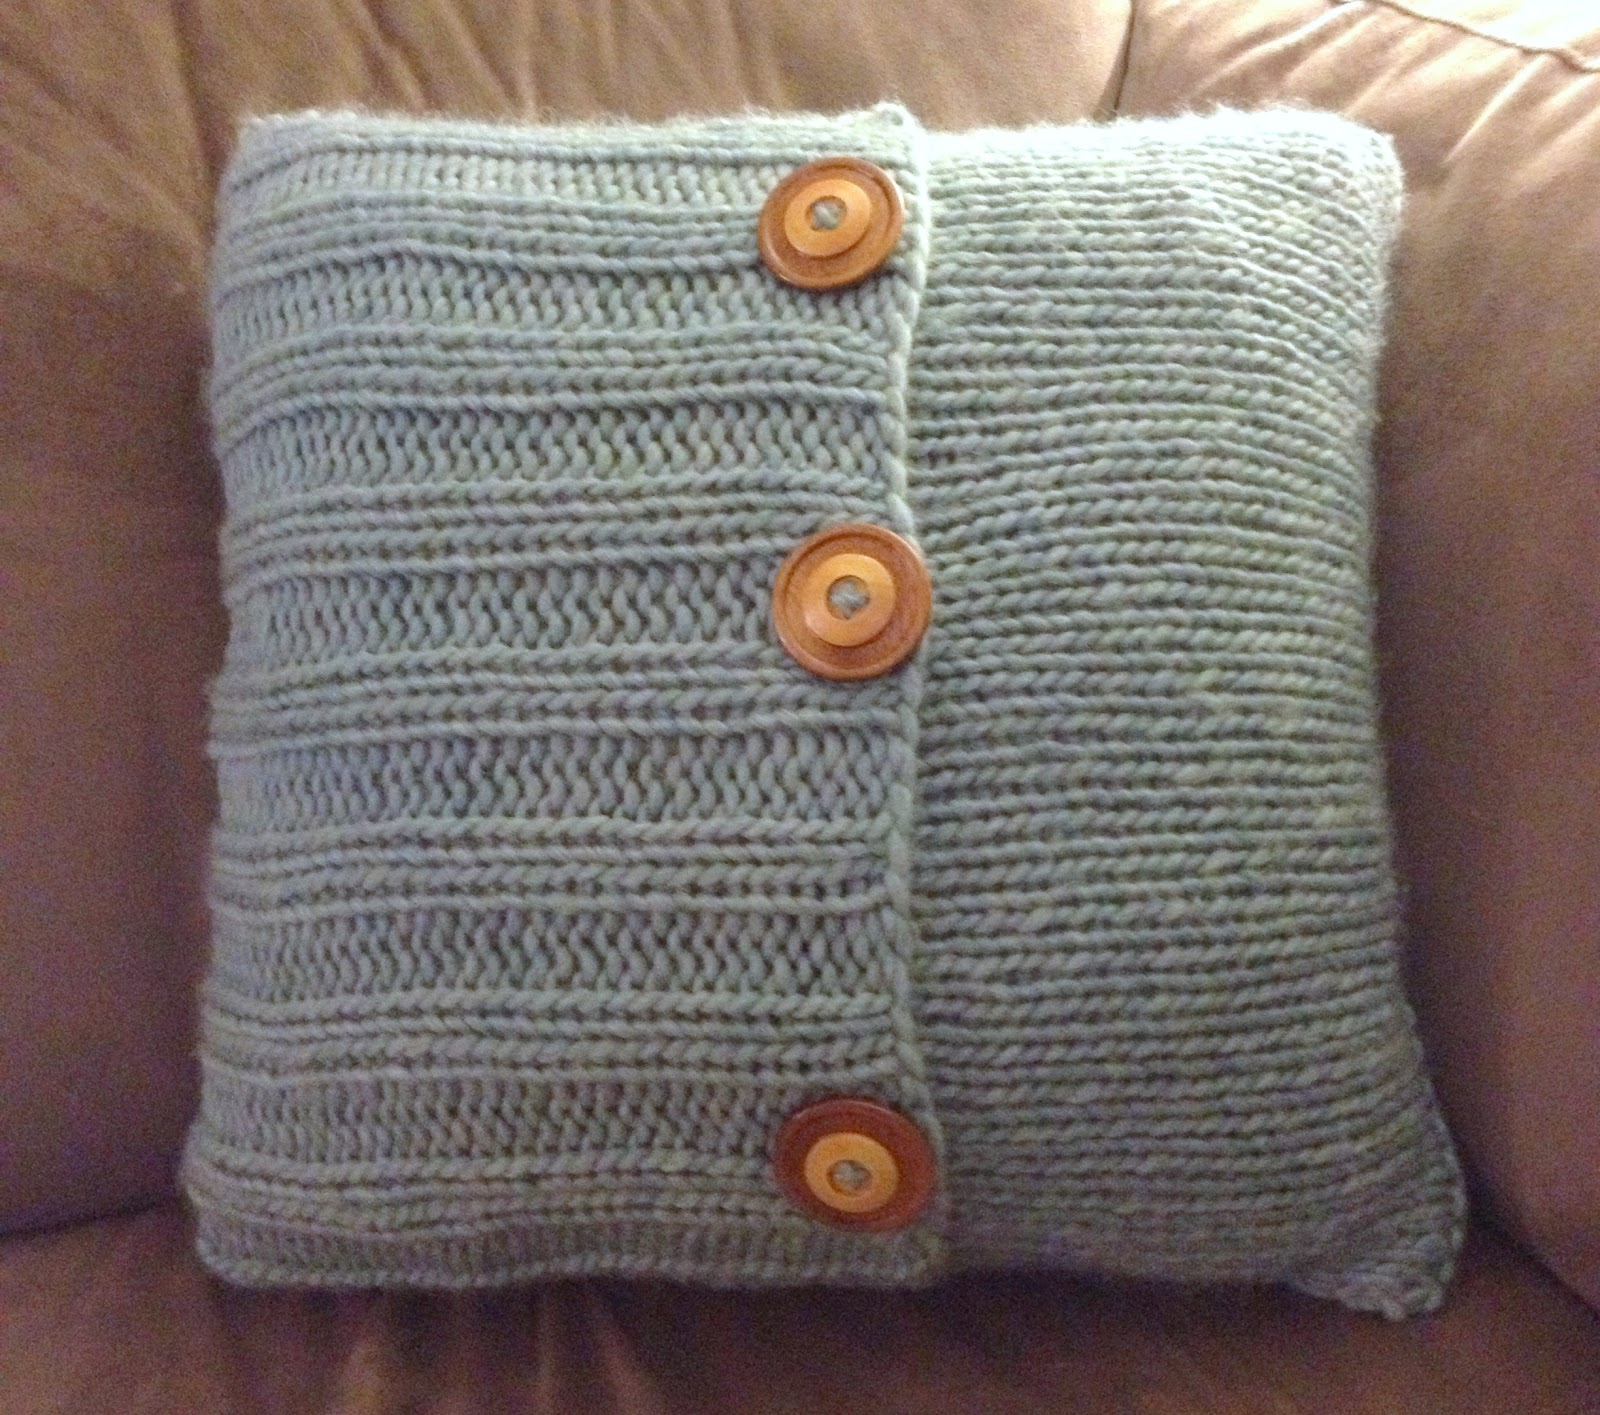 Knitting Pillows : Make bake and love knit pillow